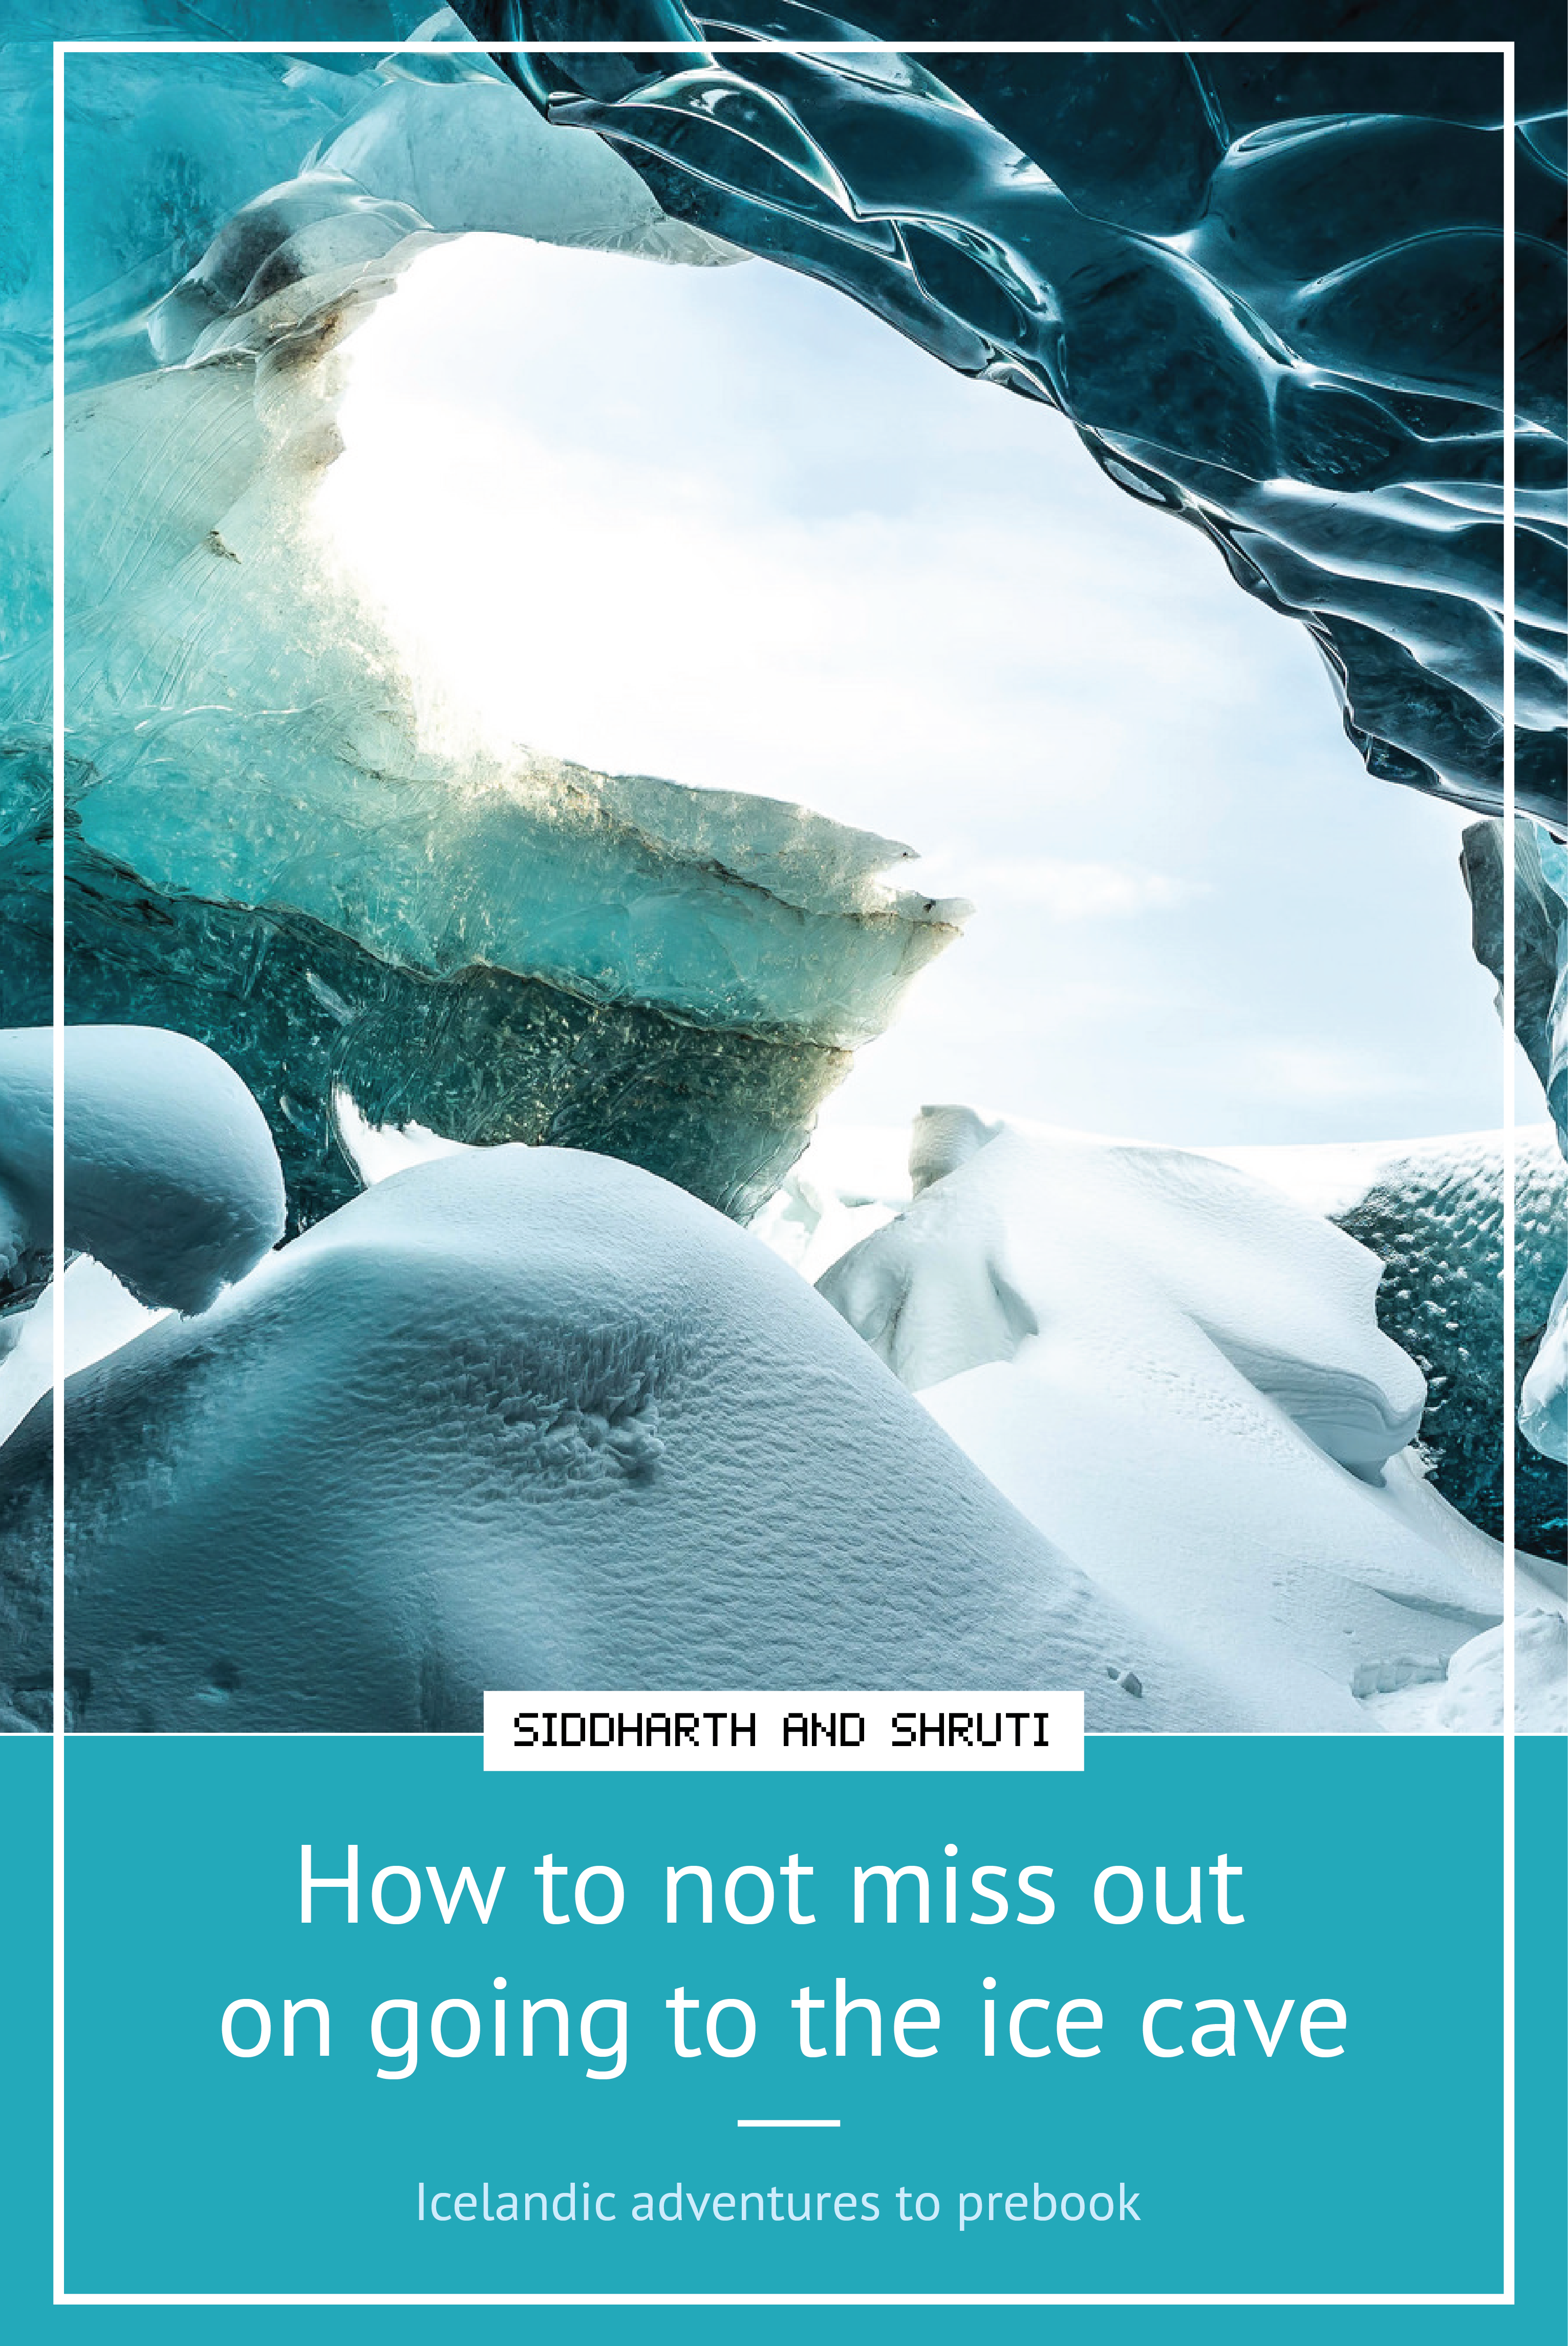 If you want to go see the ice cave or go on a glacier walk you need to book them in advance. Here's how to not miss out coz they get booked real quick. | Siddharth and Shruti